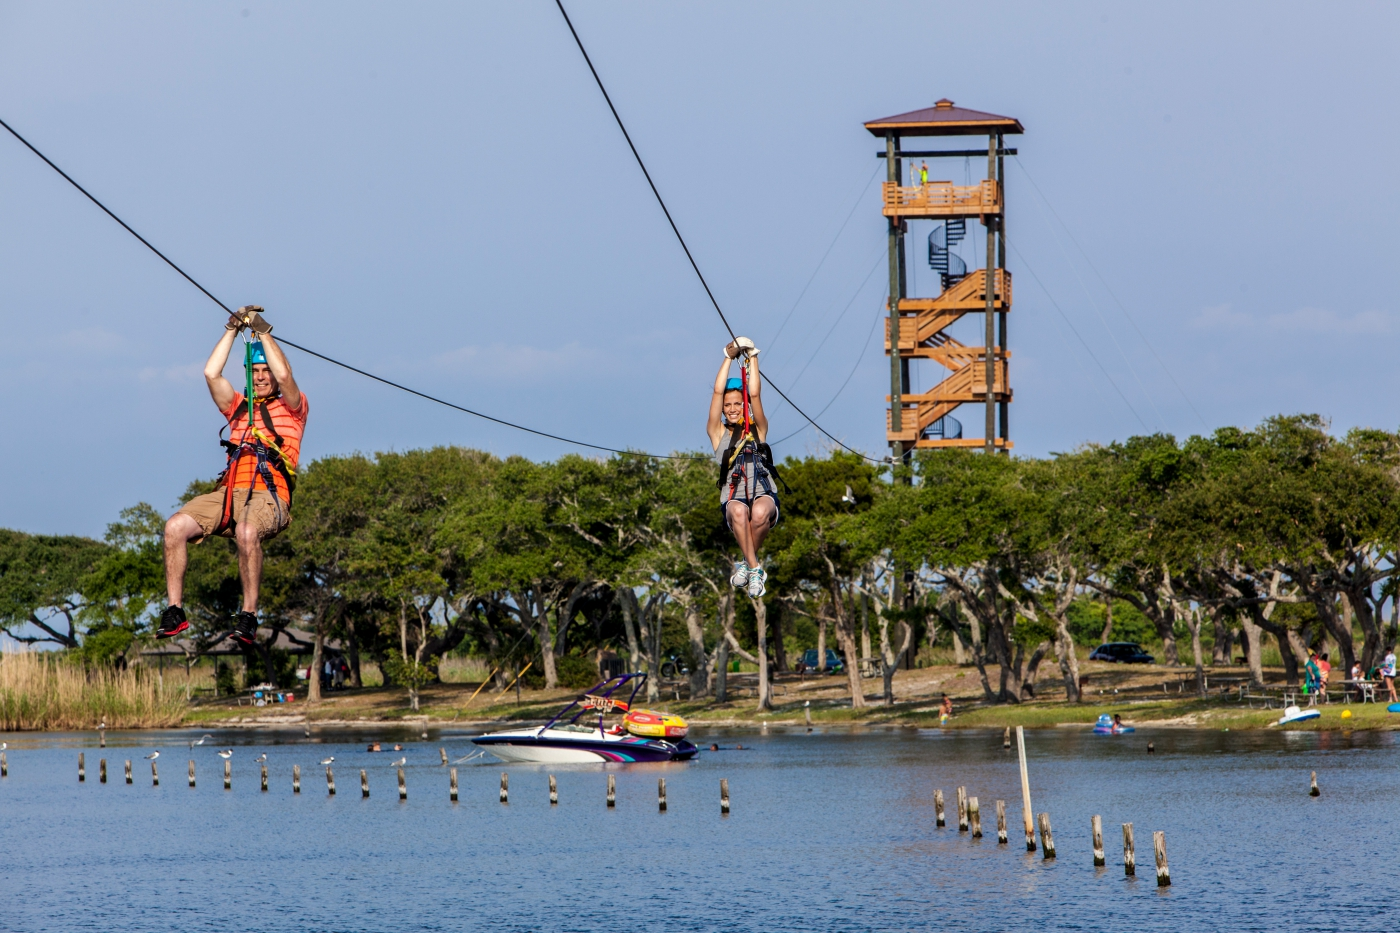 Ziplines and adventure abound at Gulf State Park in Gulf Shores.